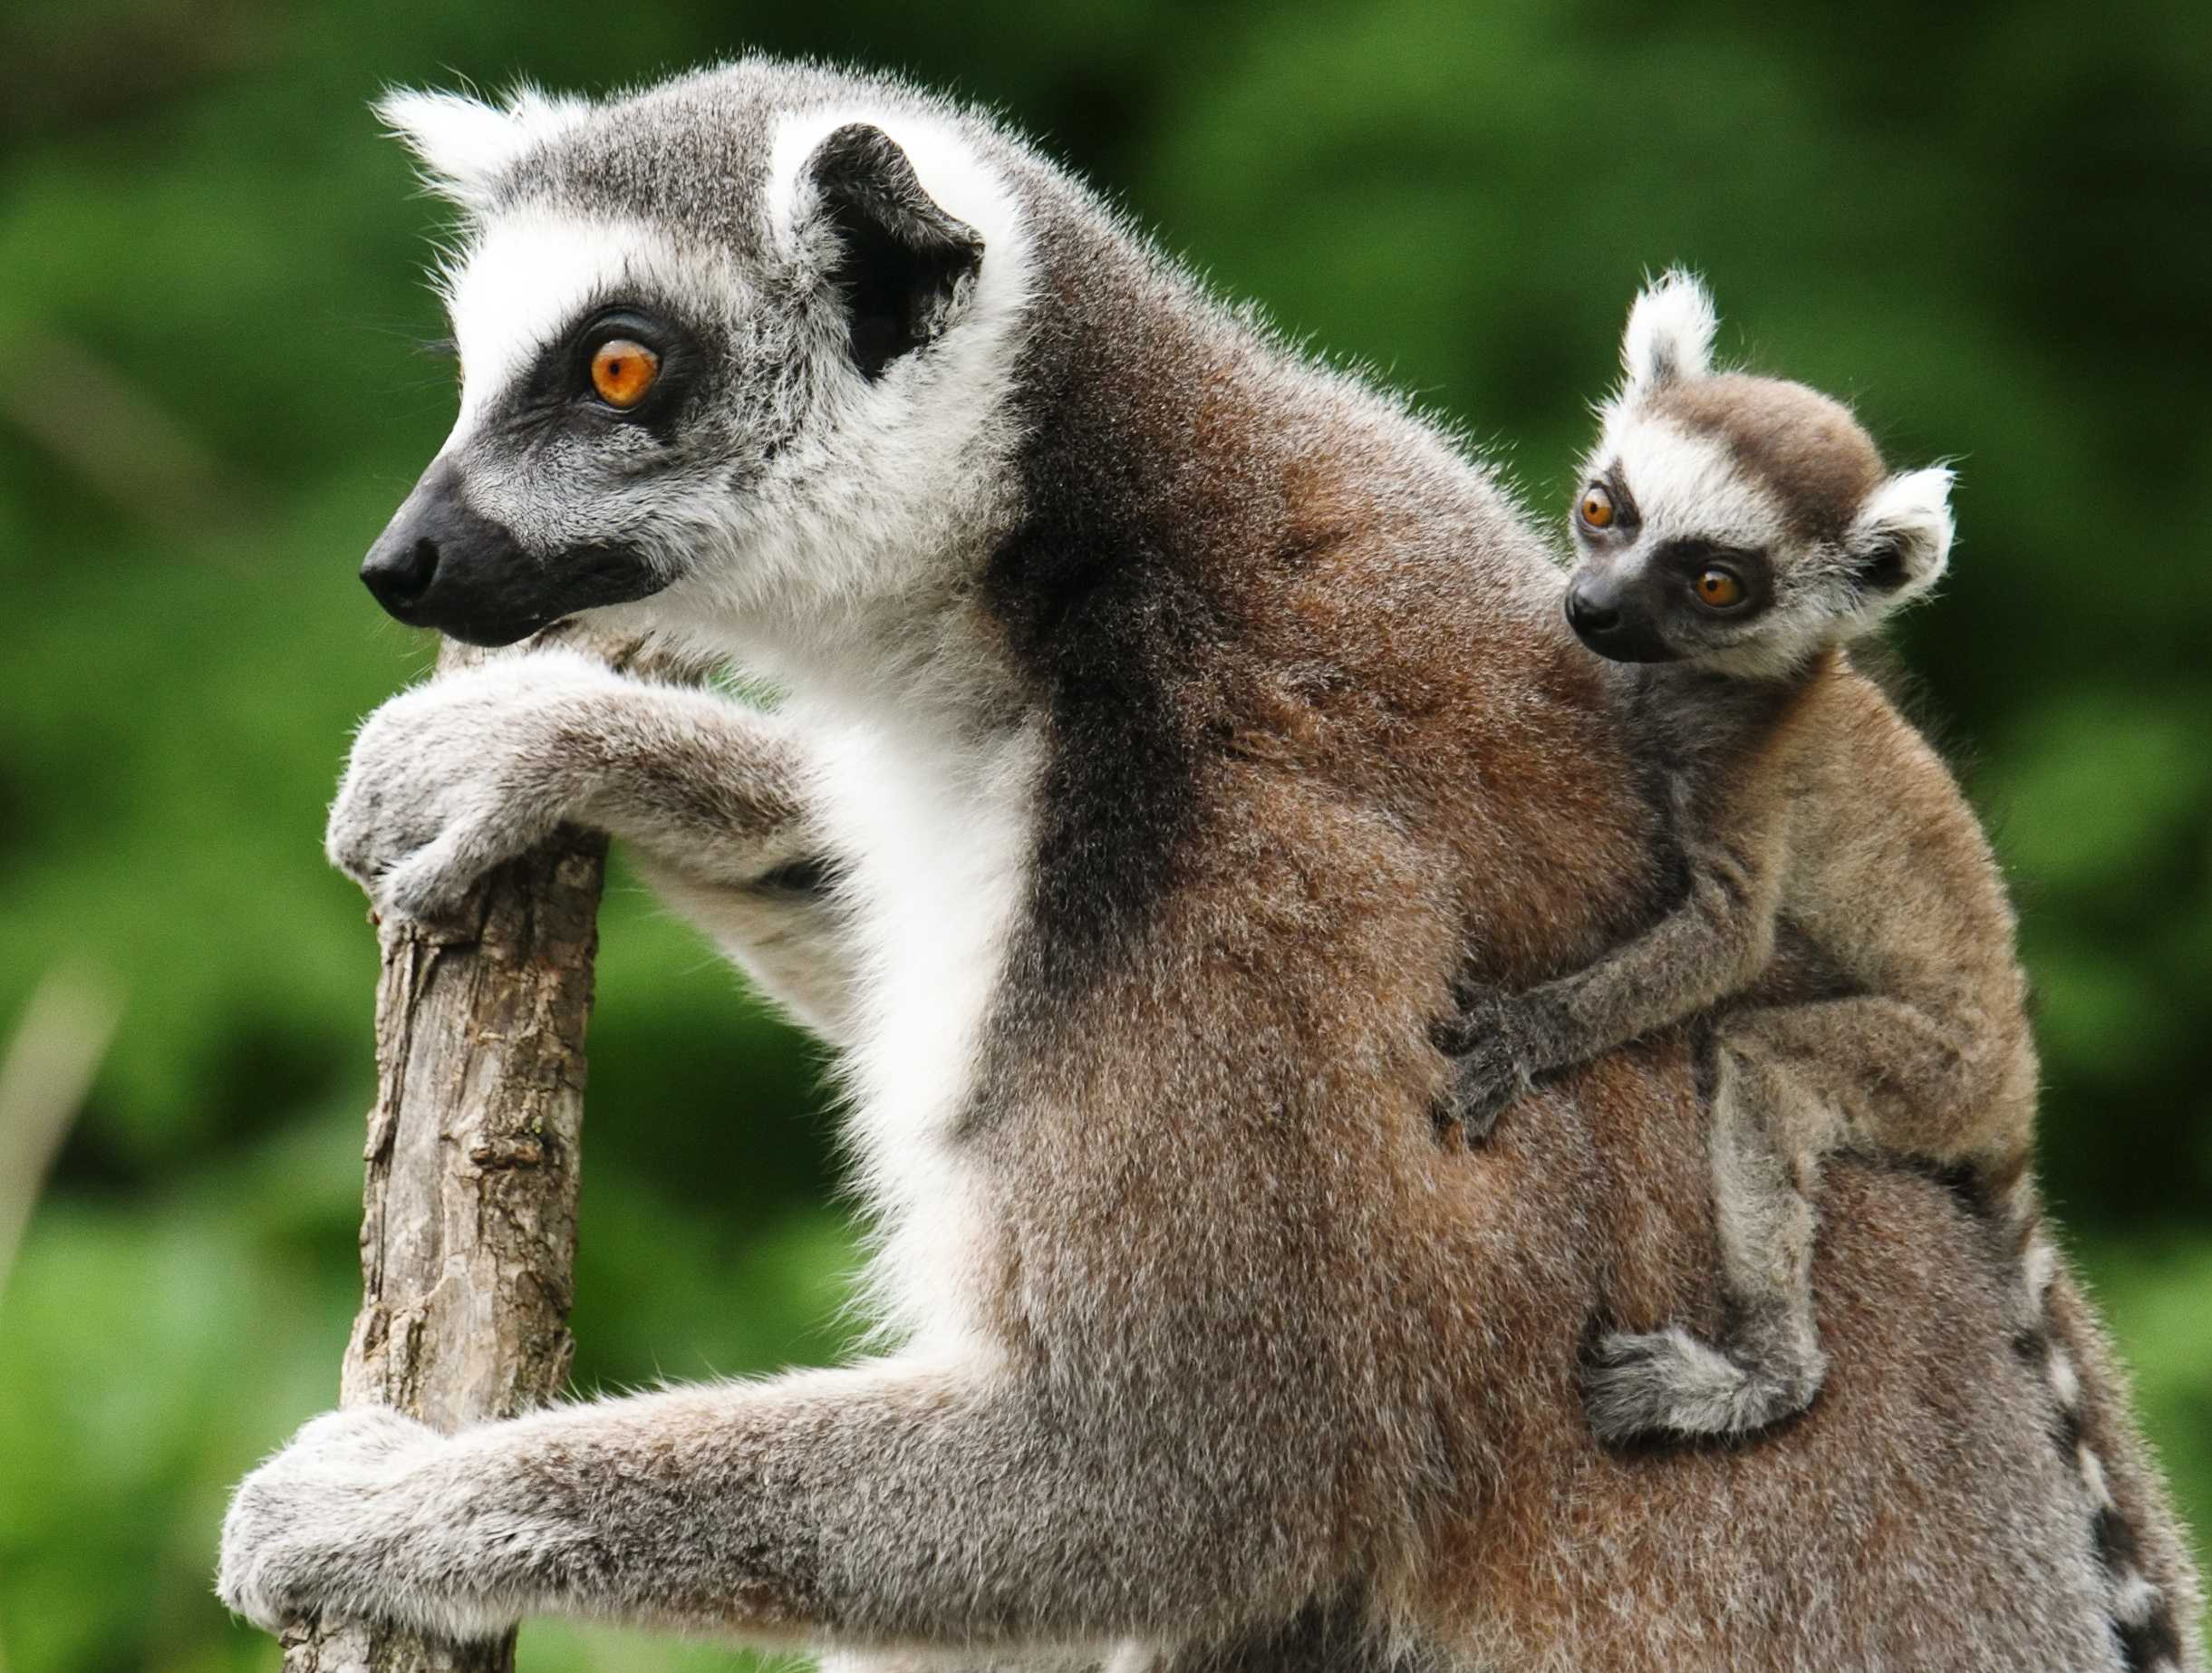 a lemur catta also known as ringtailed lemur with its